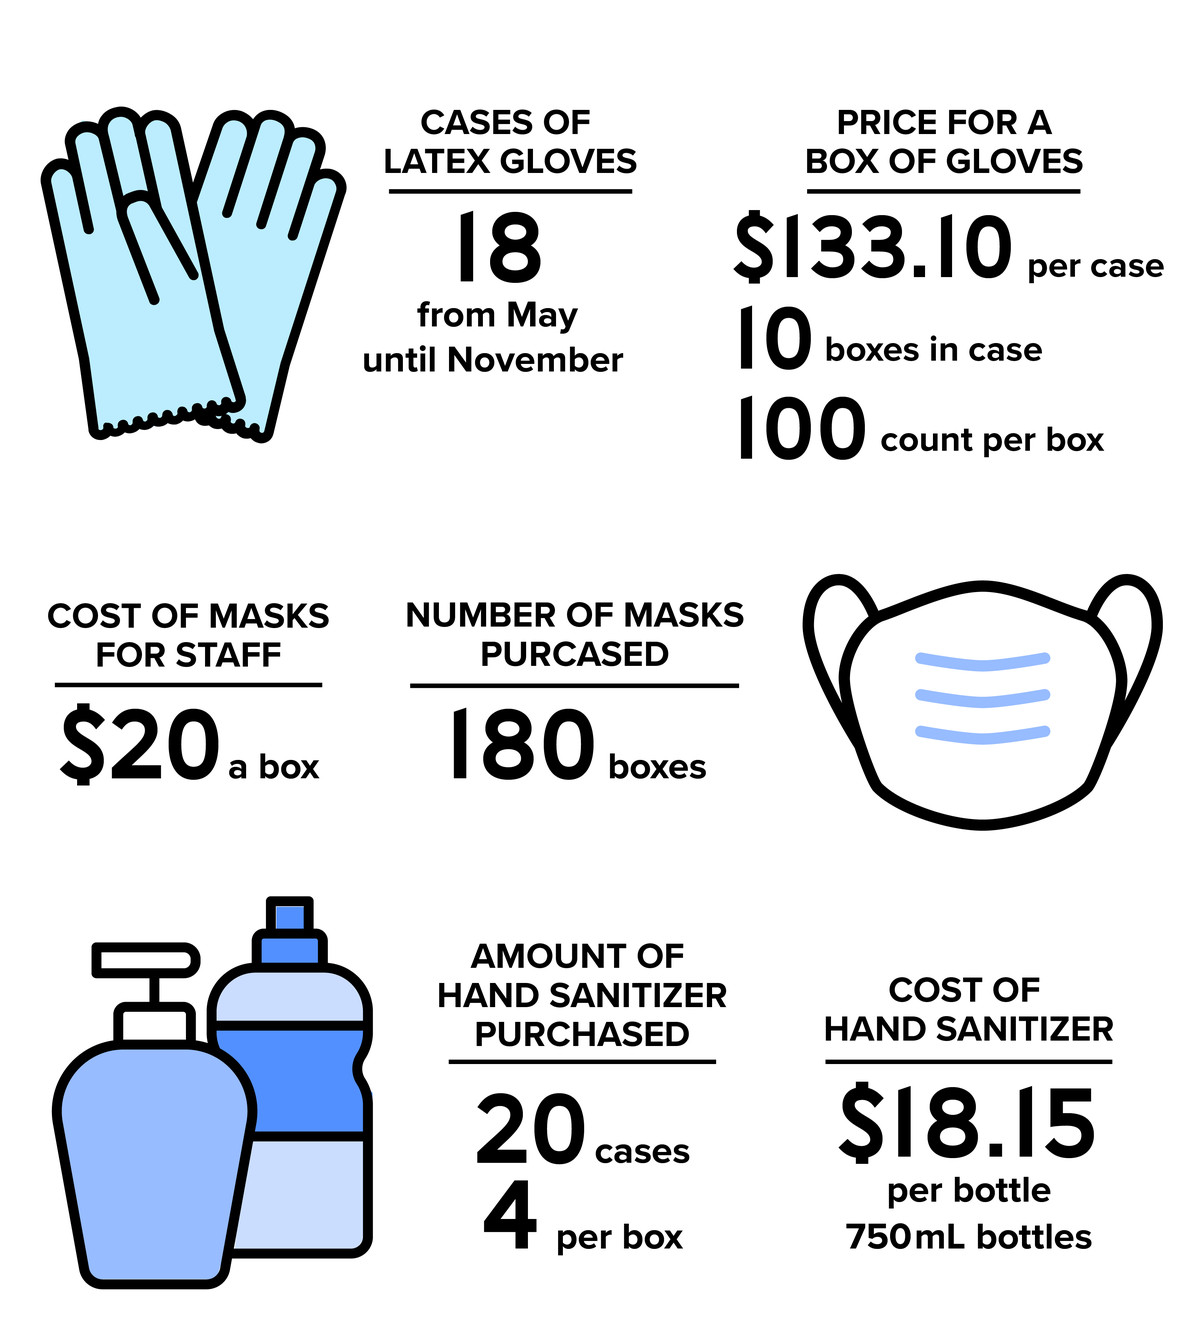 A visual that explains the costs of personal protective equipment and cleaning supplies as described in the article.